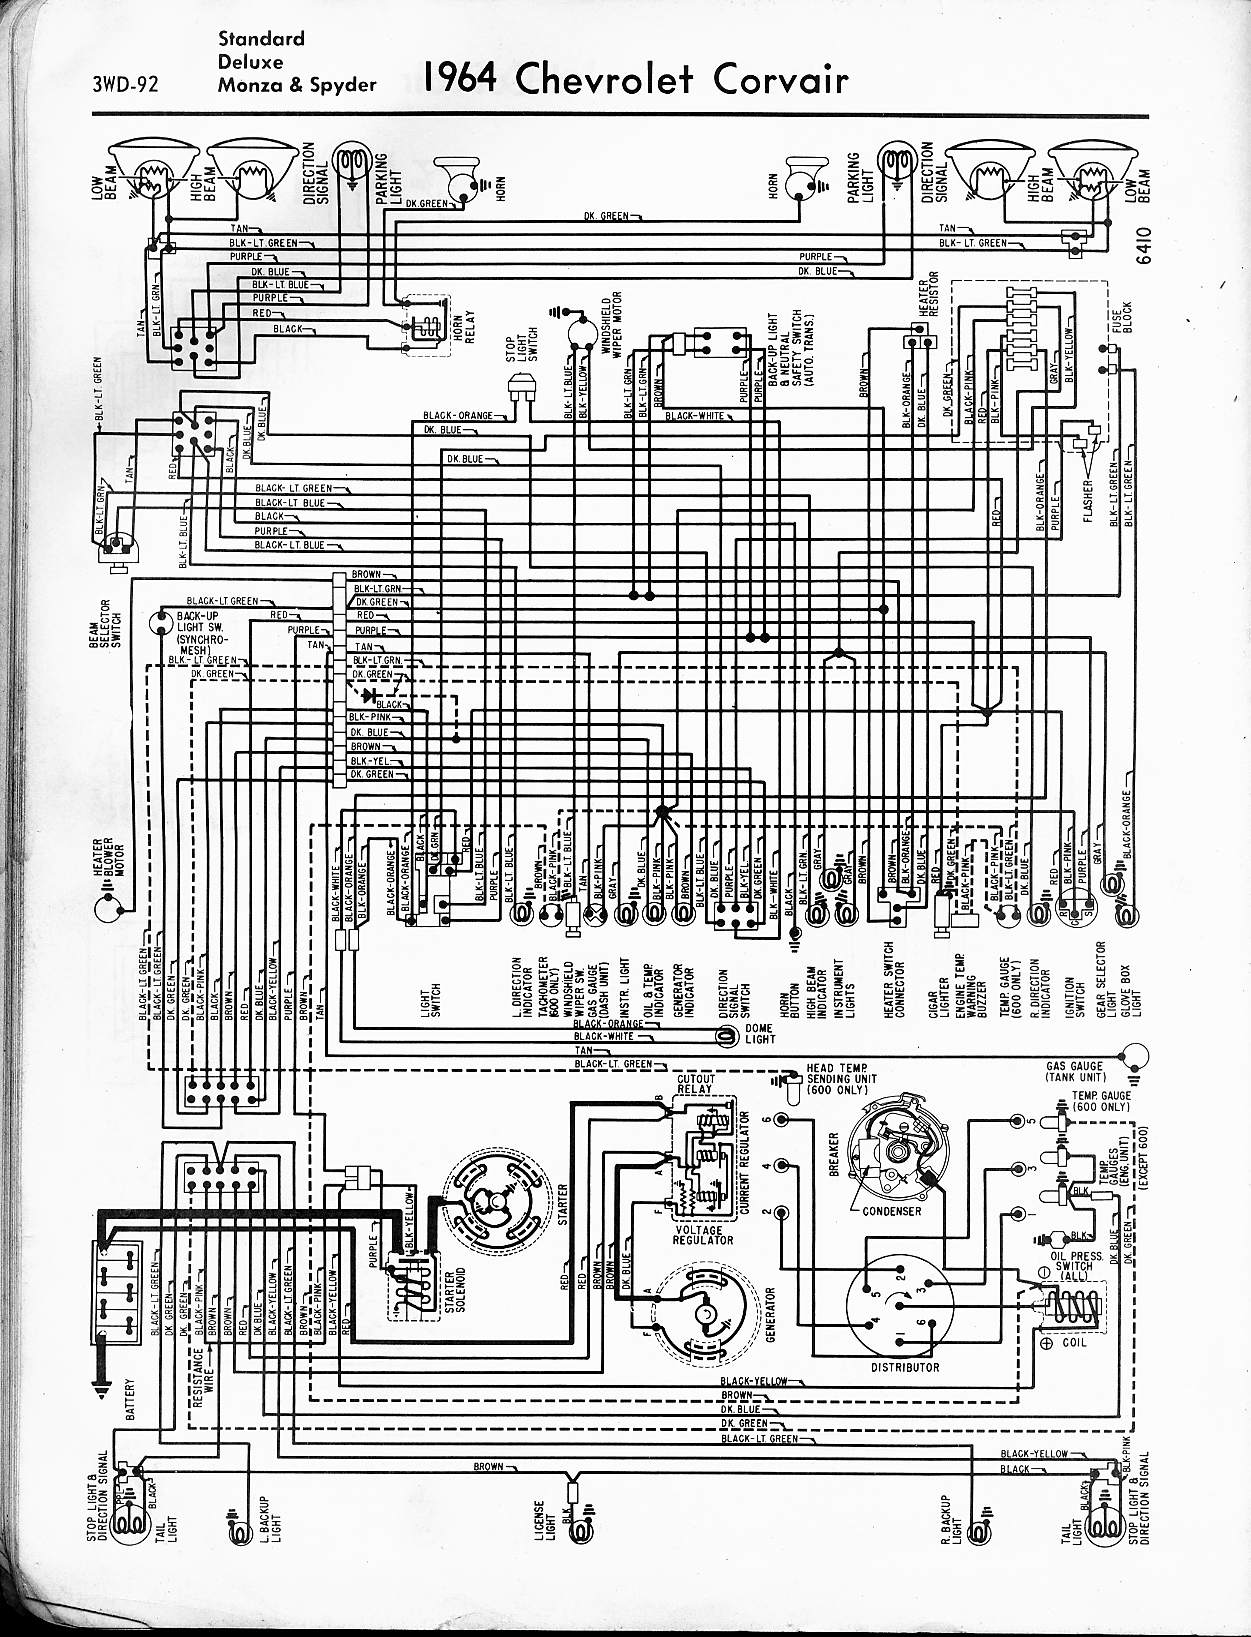 MWireChev64_3WD 092 57 65 chevy wiring diagrams chevrolet wiring diagrams free download at n-0.co